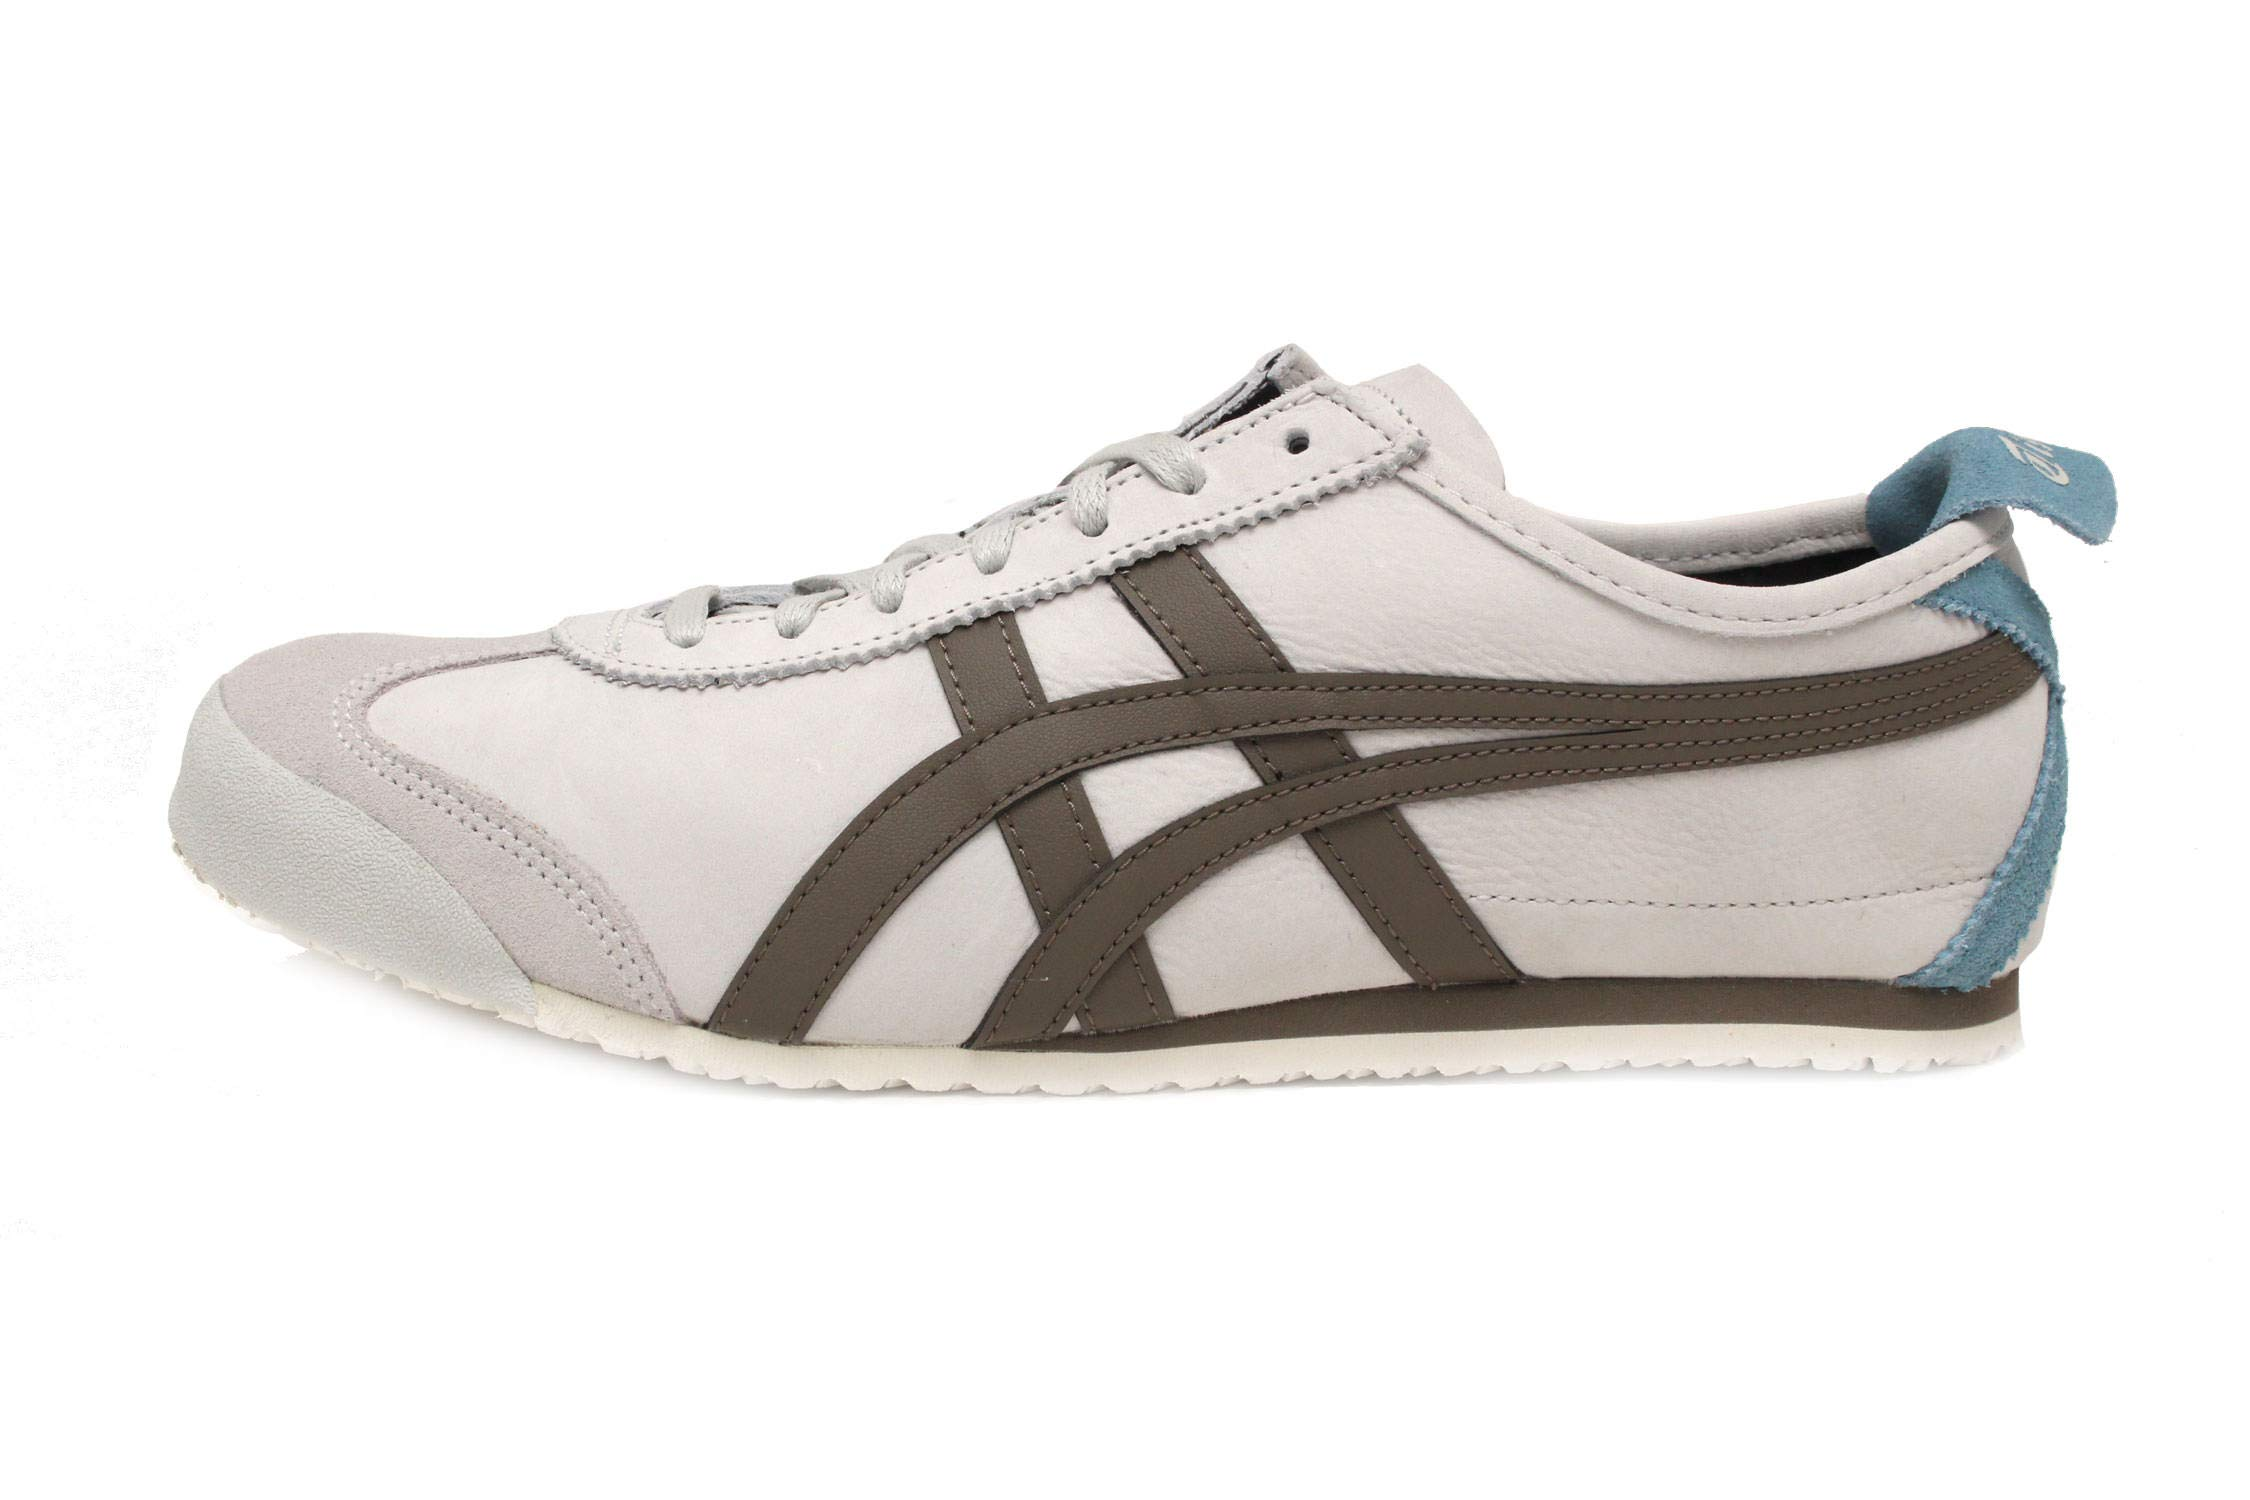 separation shoes 16eb8 bb0ed Onitsuka Tiger Unisex Mexico 66 Shoes 1183A148, Glacier Grey/Dark Taupe, 11  M US